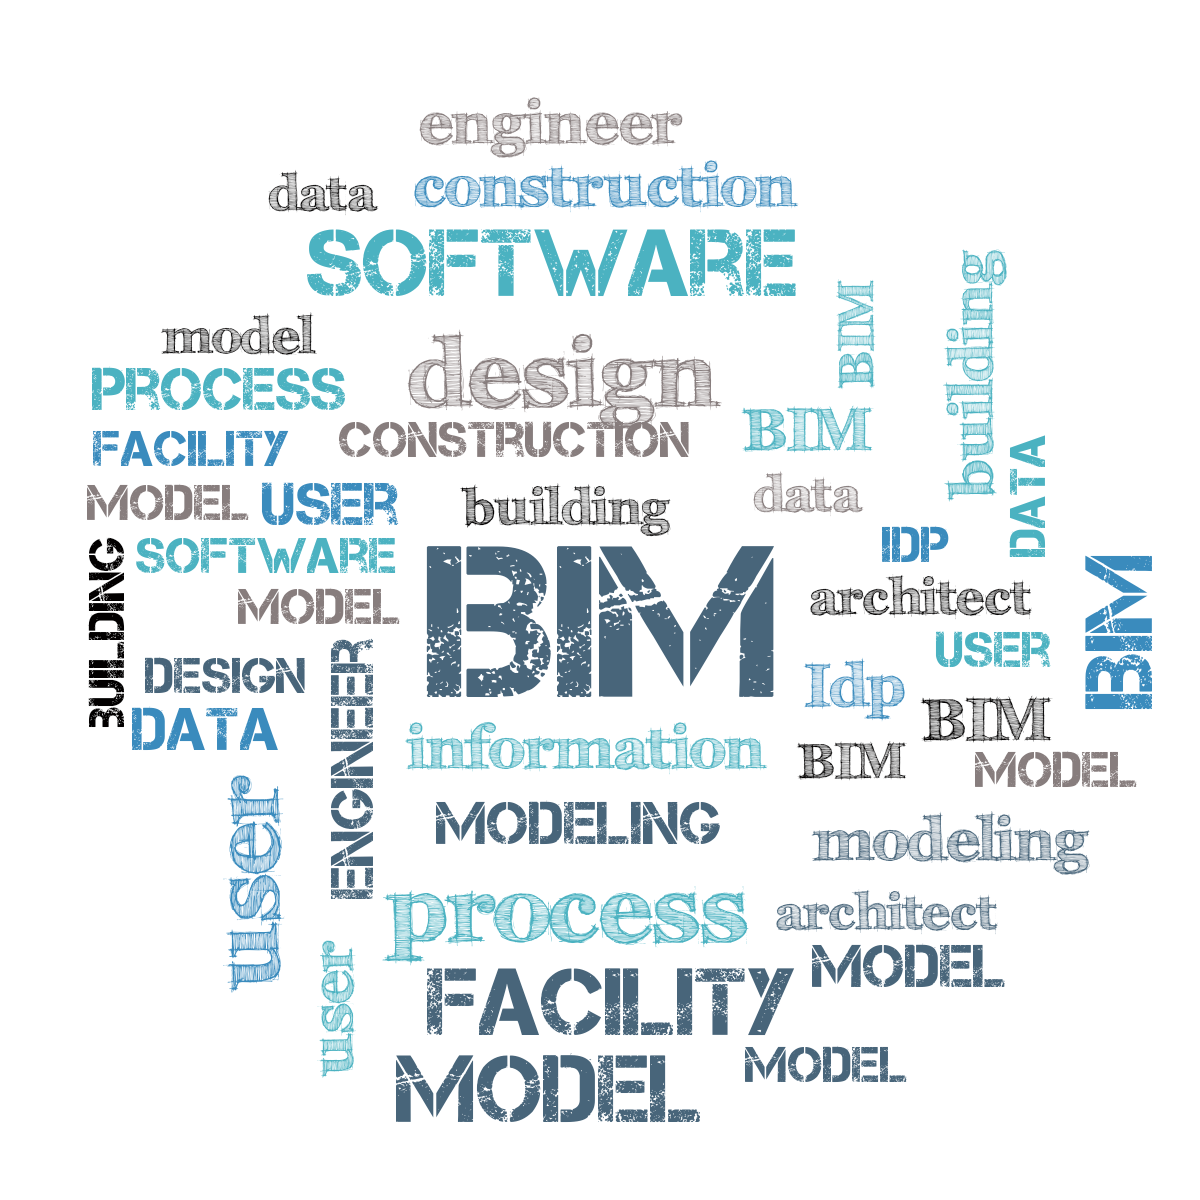 BIM: PARADIGM SHIFT IN THE FIELDS OF ENGINEERING, ARCHITECTURE AND CONSTRUCTION